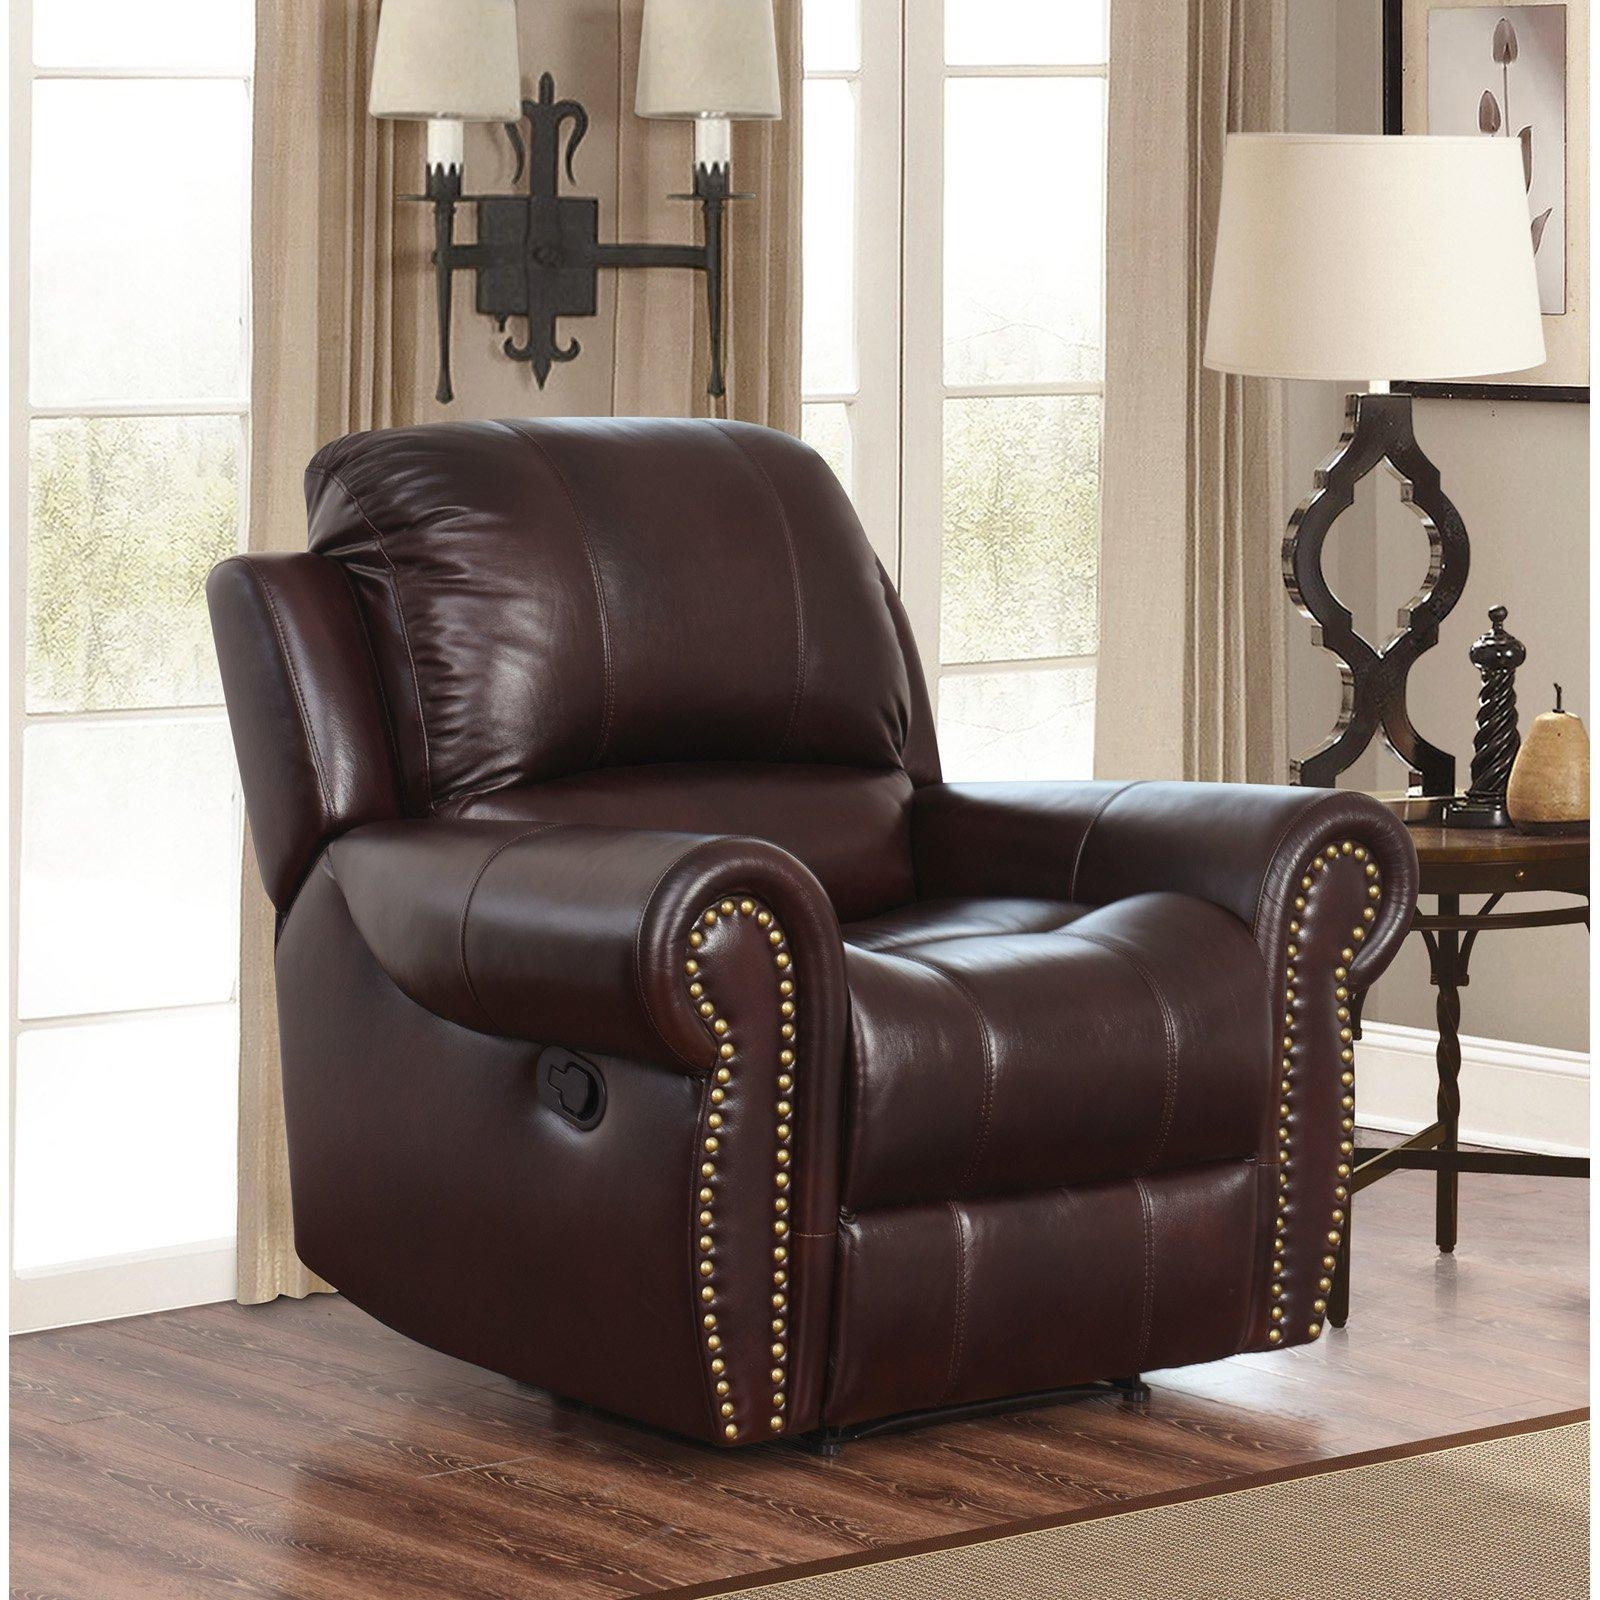 Abbyson Hogan Italian Leather Reclining Chair With Nailheads Throughout Abbyson Recliners (Image 3 of 20)